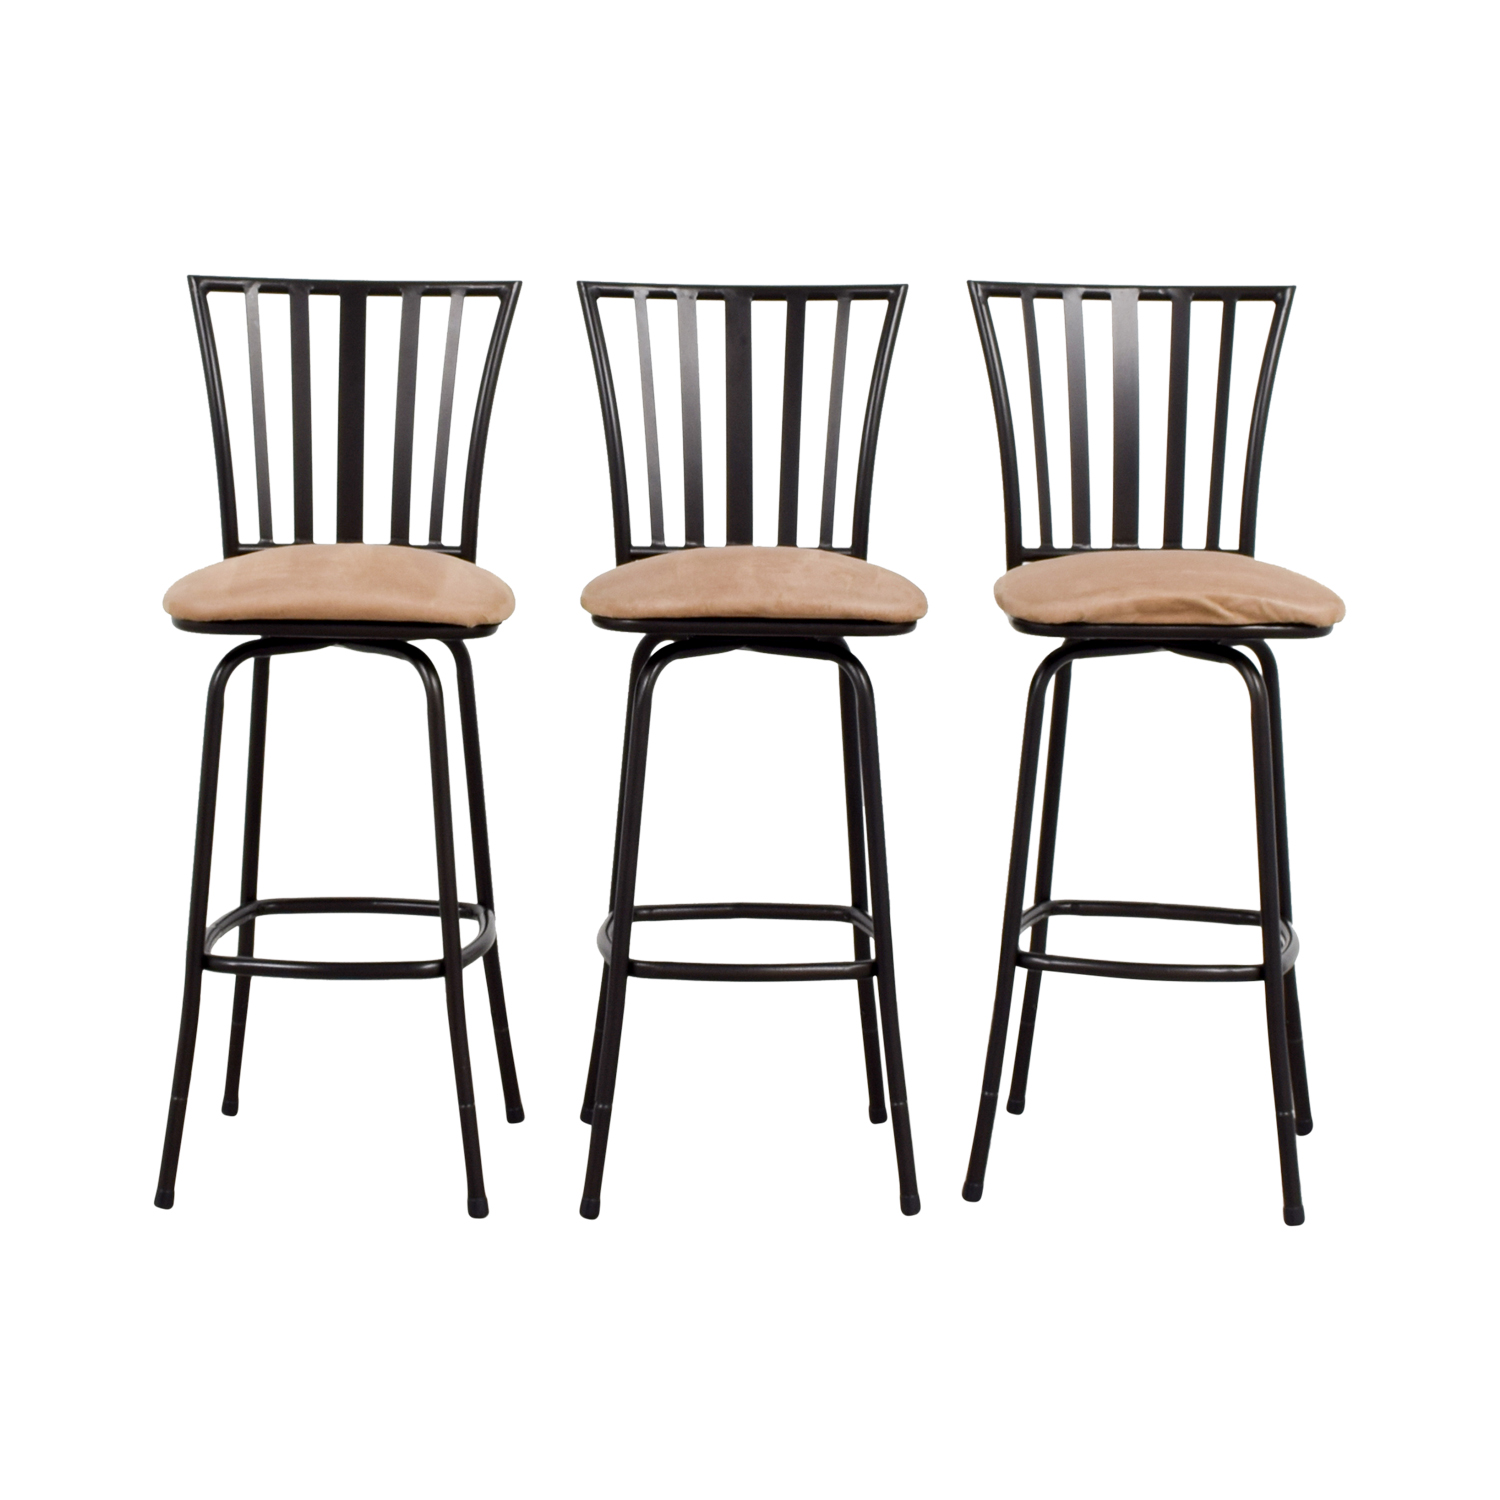 Tan Upholstered Stools with Black Frame dimensions